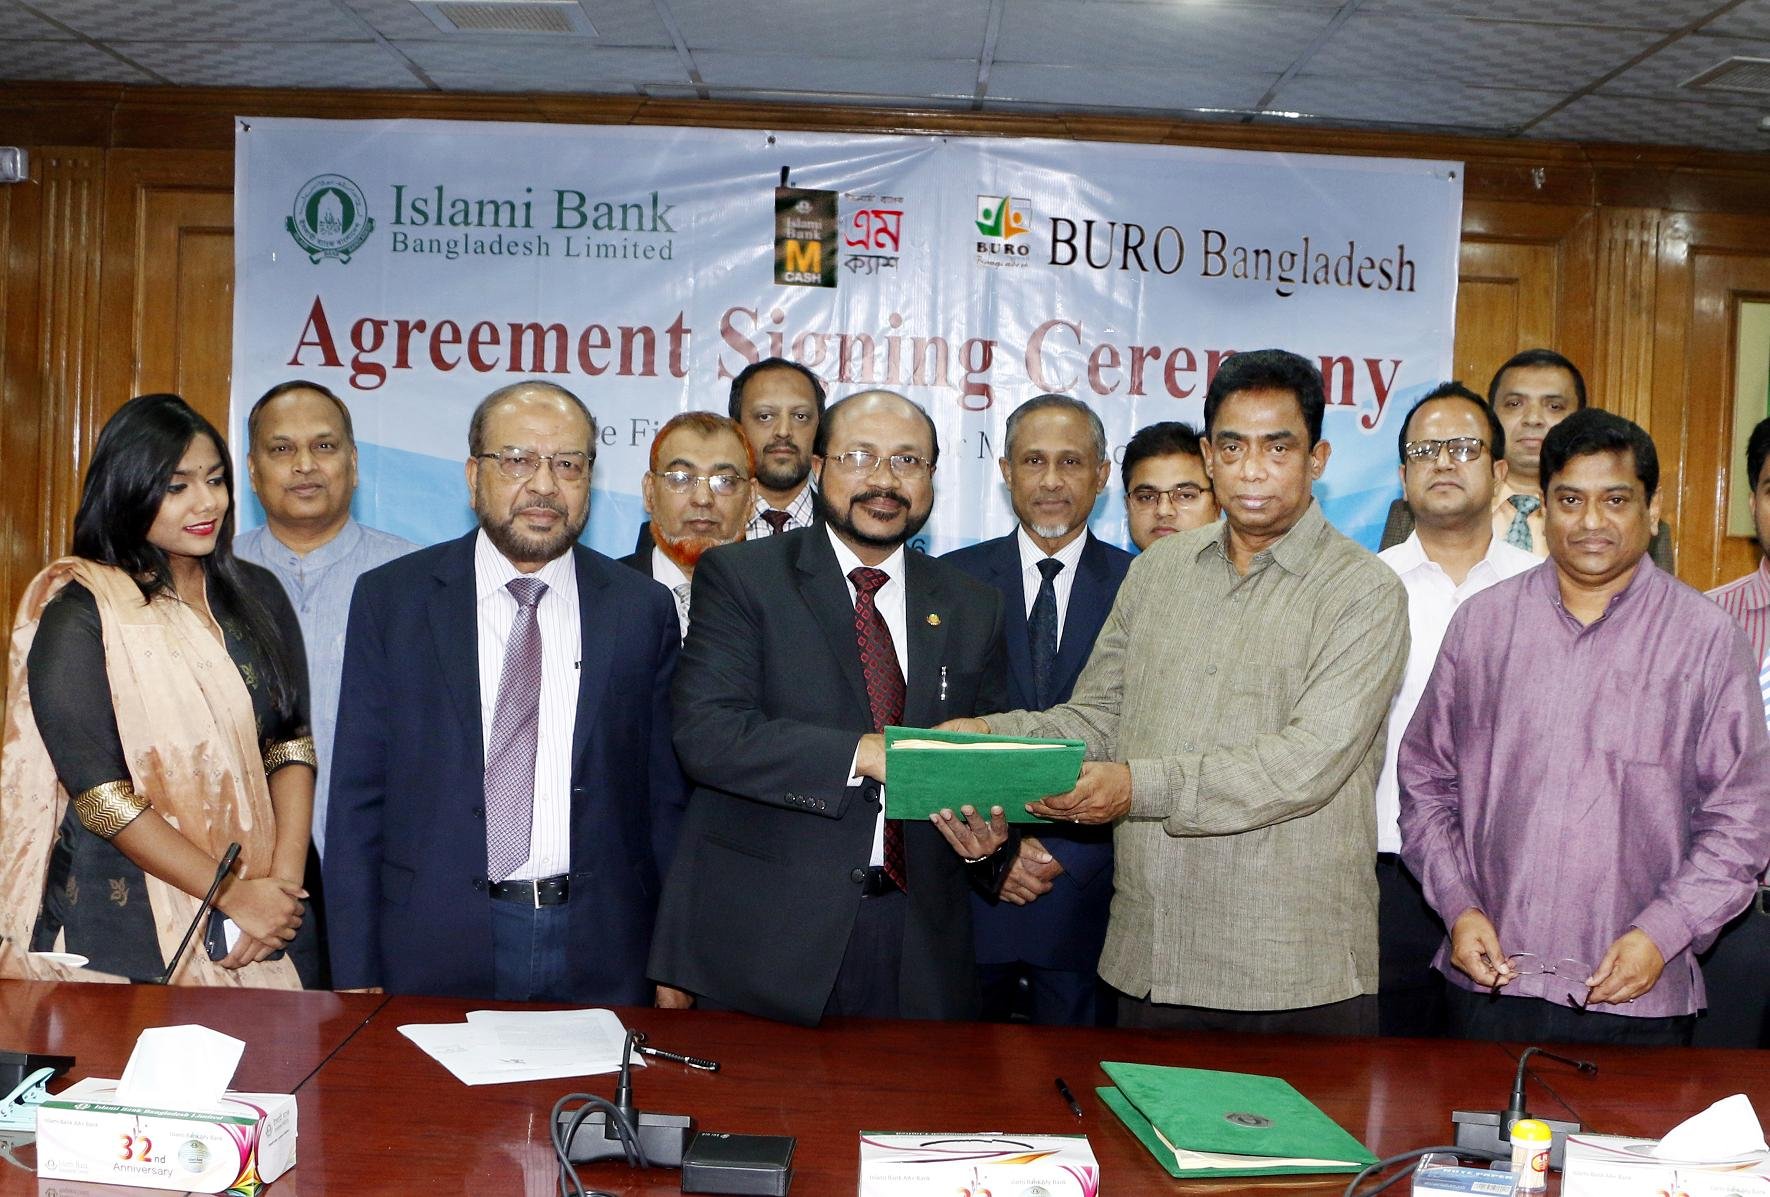 foreign exchange of ibbl Islami bank bangladesh ltd foreign exchange branch bic/swift code is ibblbddh109 islami bank bangladesh ltd foreign exchange address 41, dilkusha commercial area dhaka bangladesh - bd.